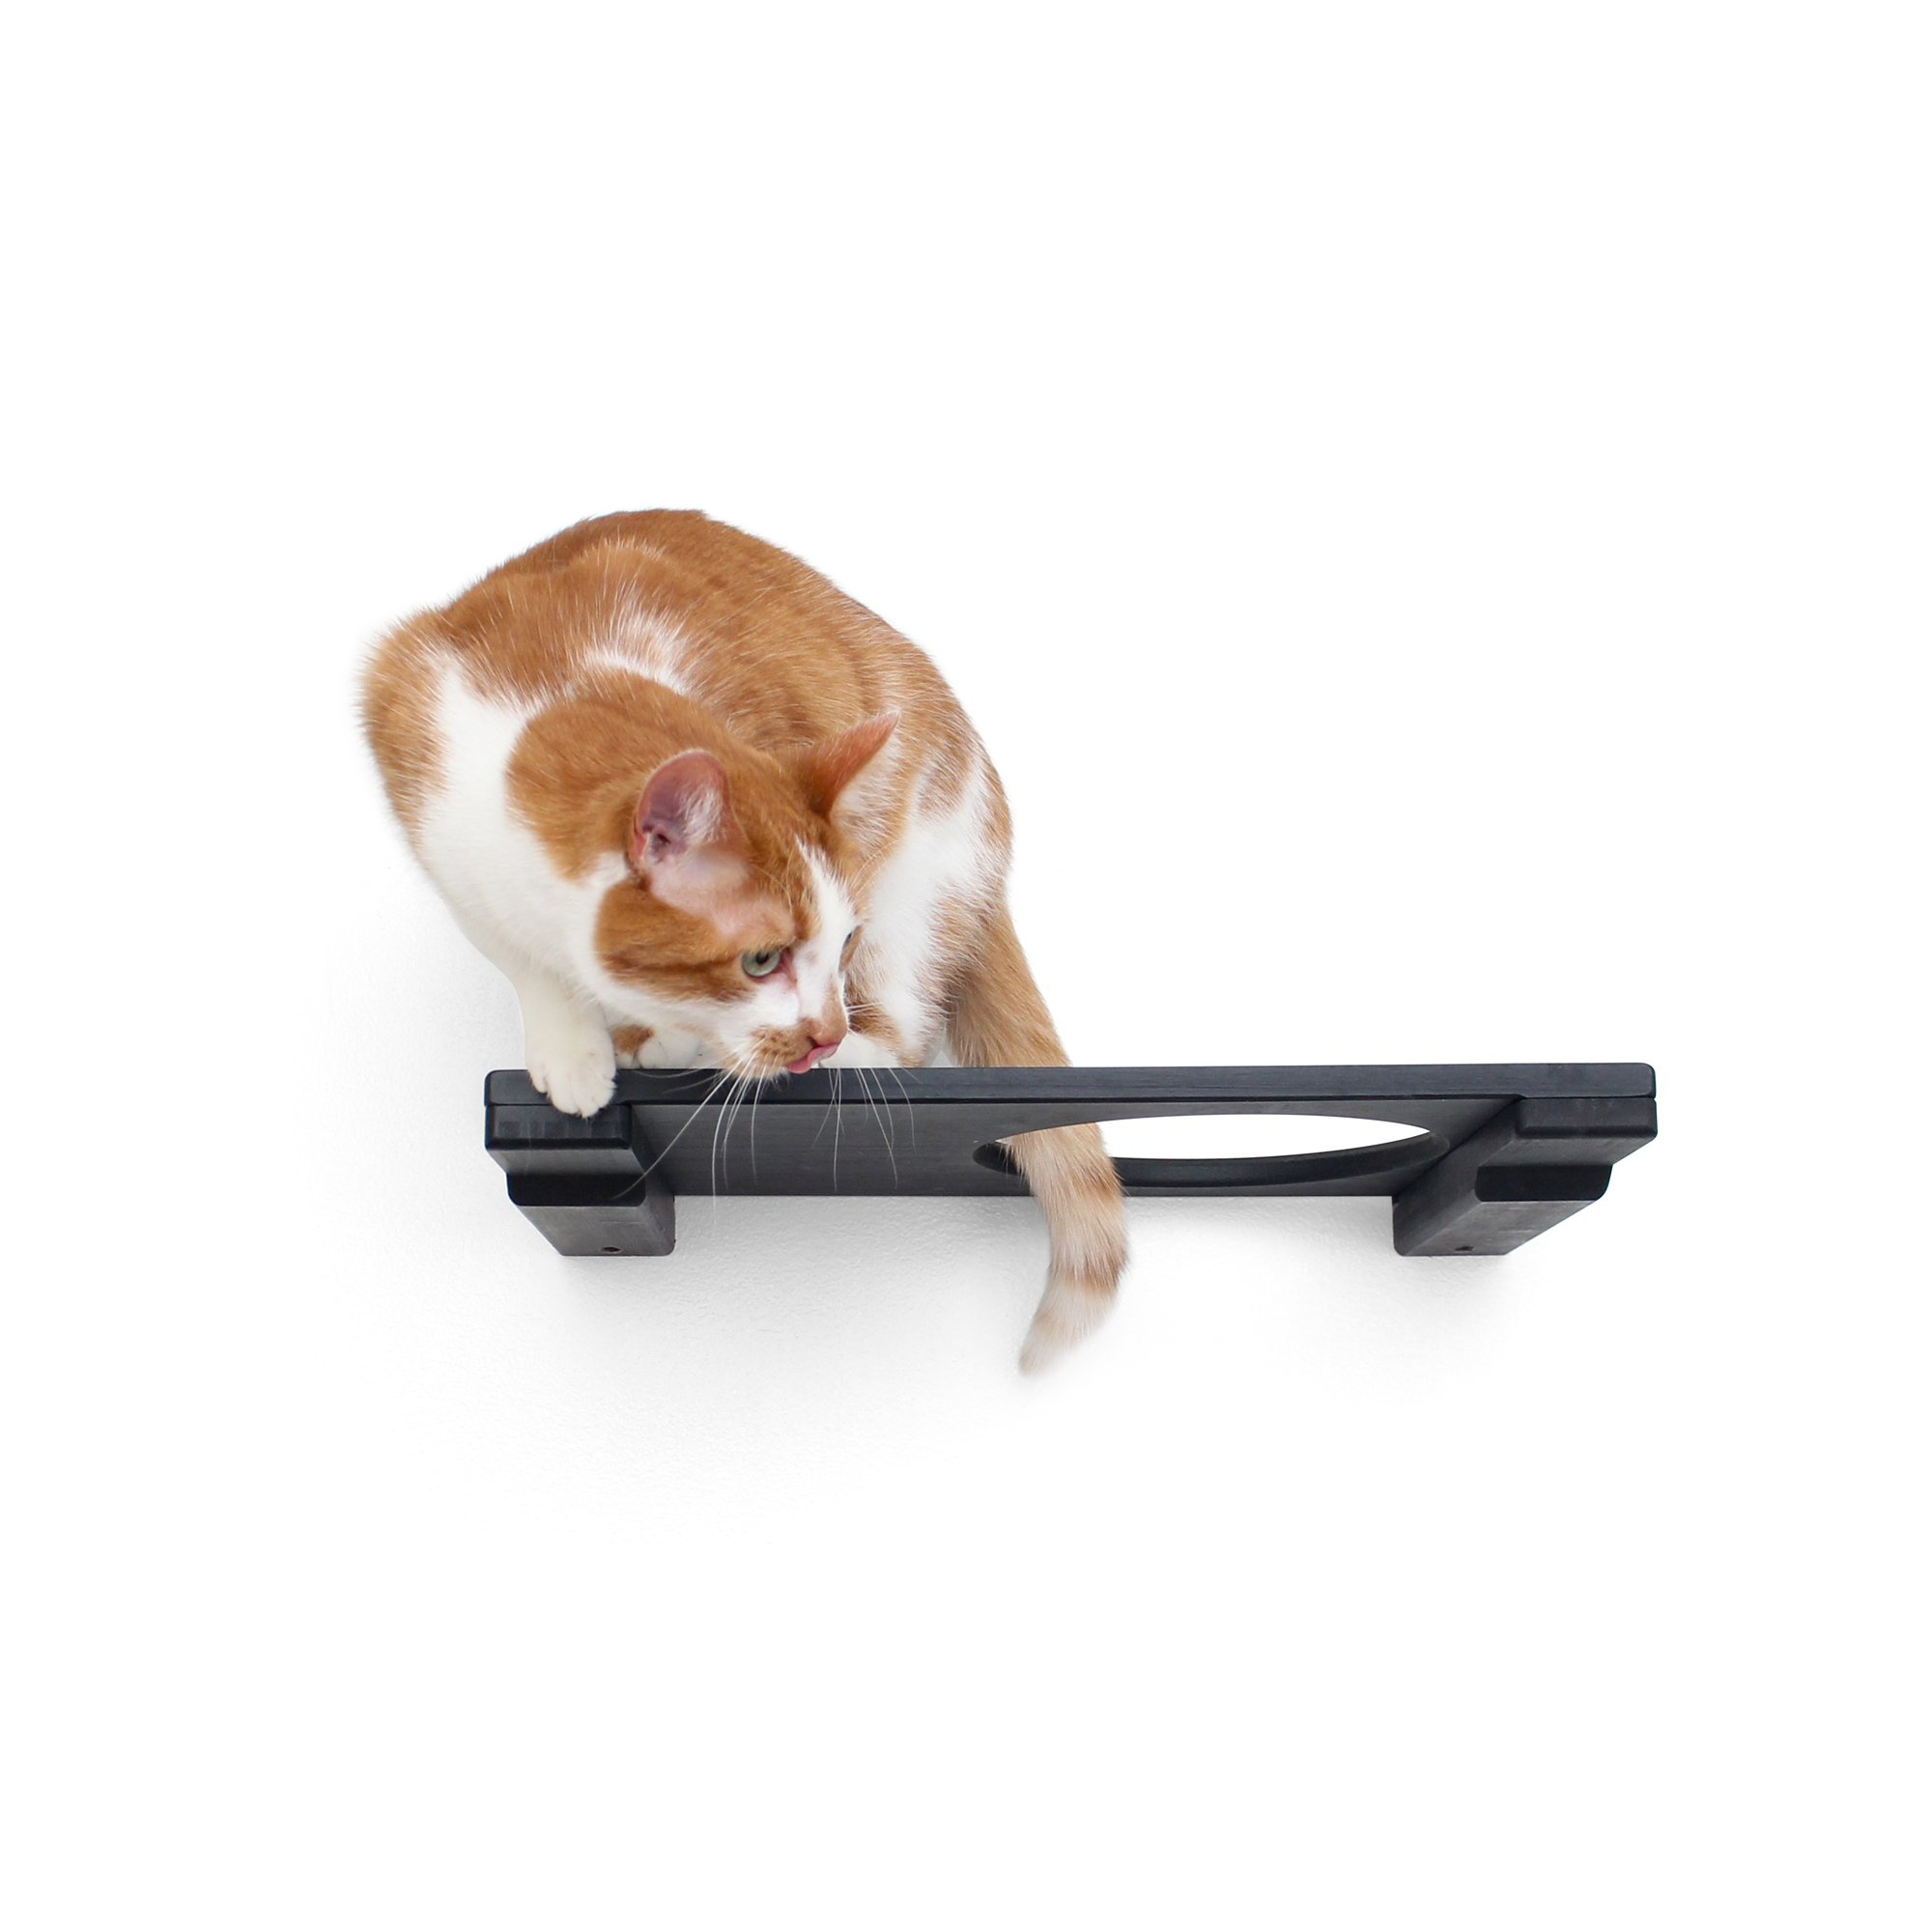 """Catastrophicreations The Cat Mod 18"""" Escape Hatch Shelf For Cats In Onyx, 18 In W X 3 In H, 7 Lb"""